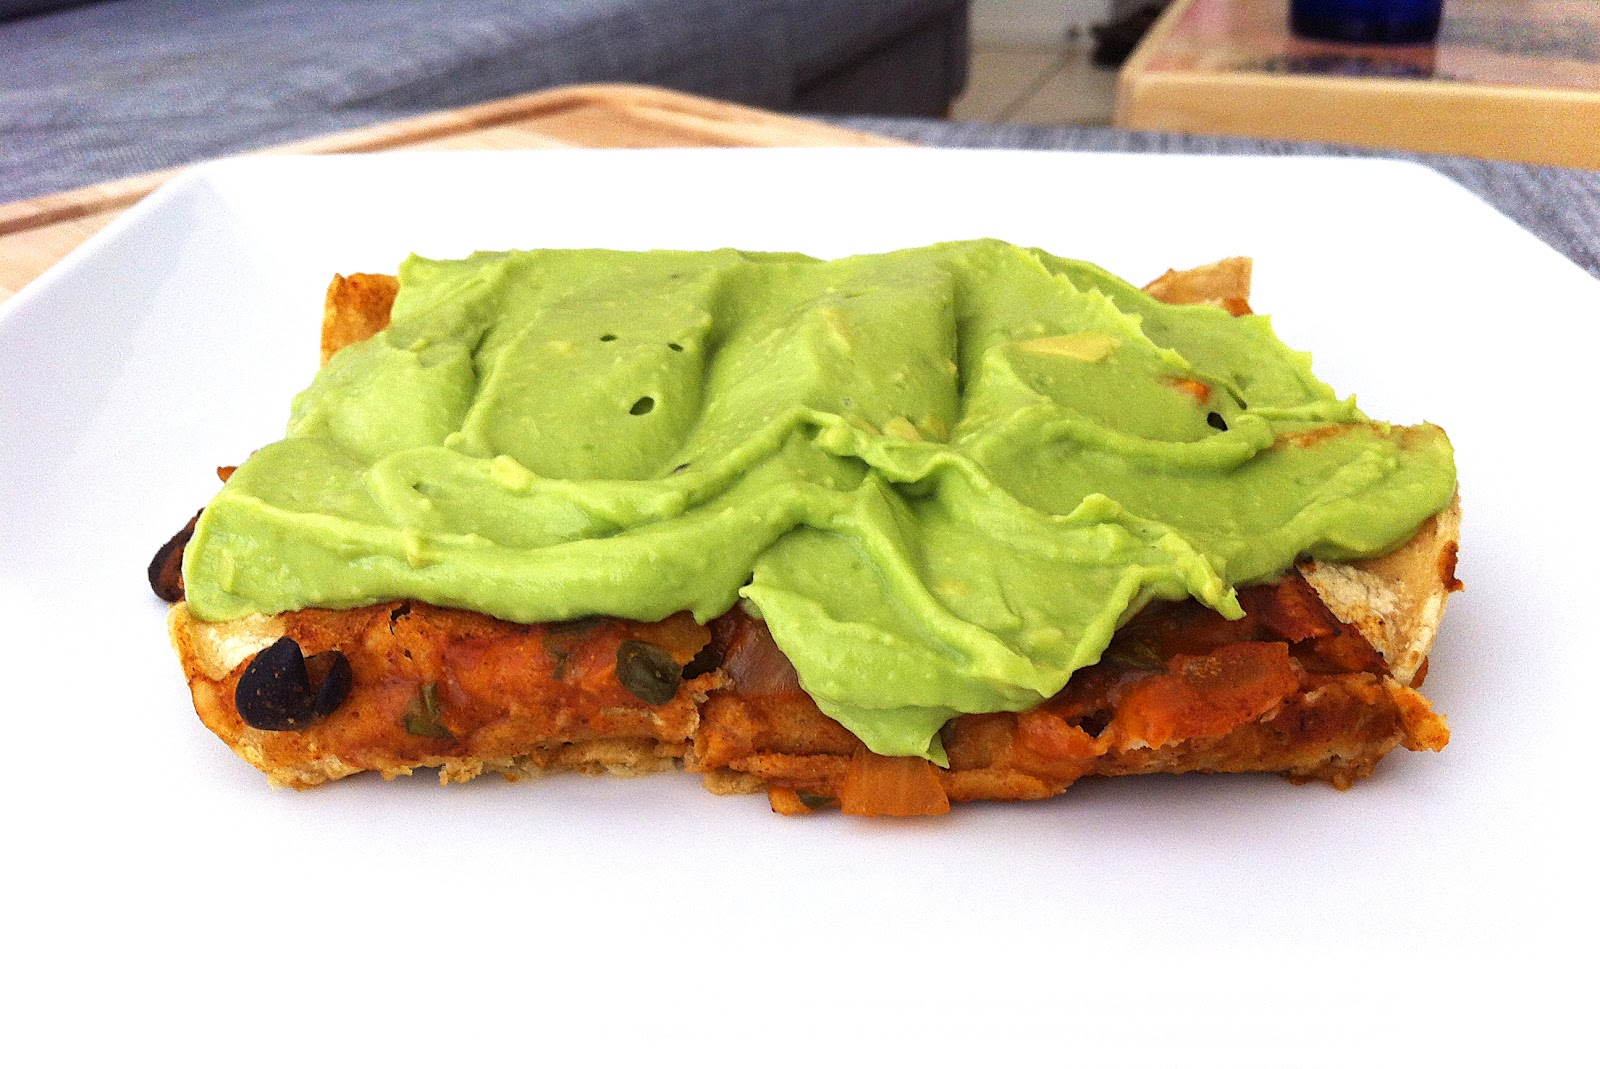 Made to Create: Enchiladas with Avocado Lime Cream Sauce